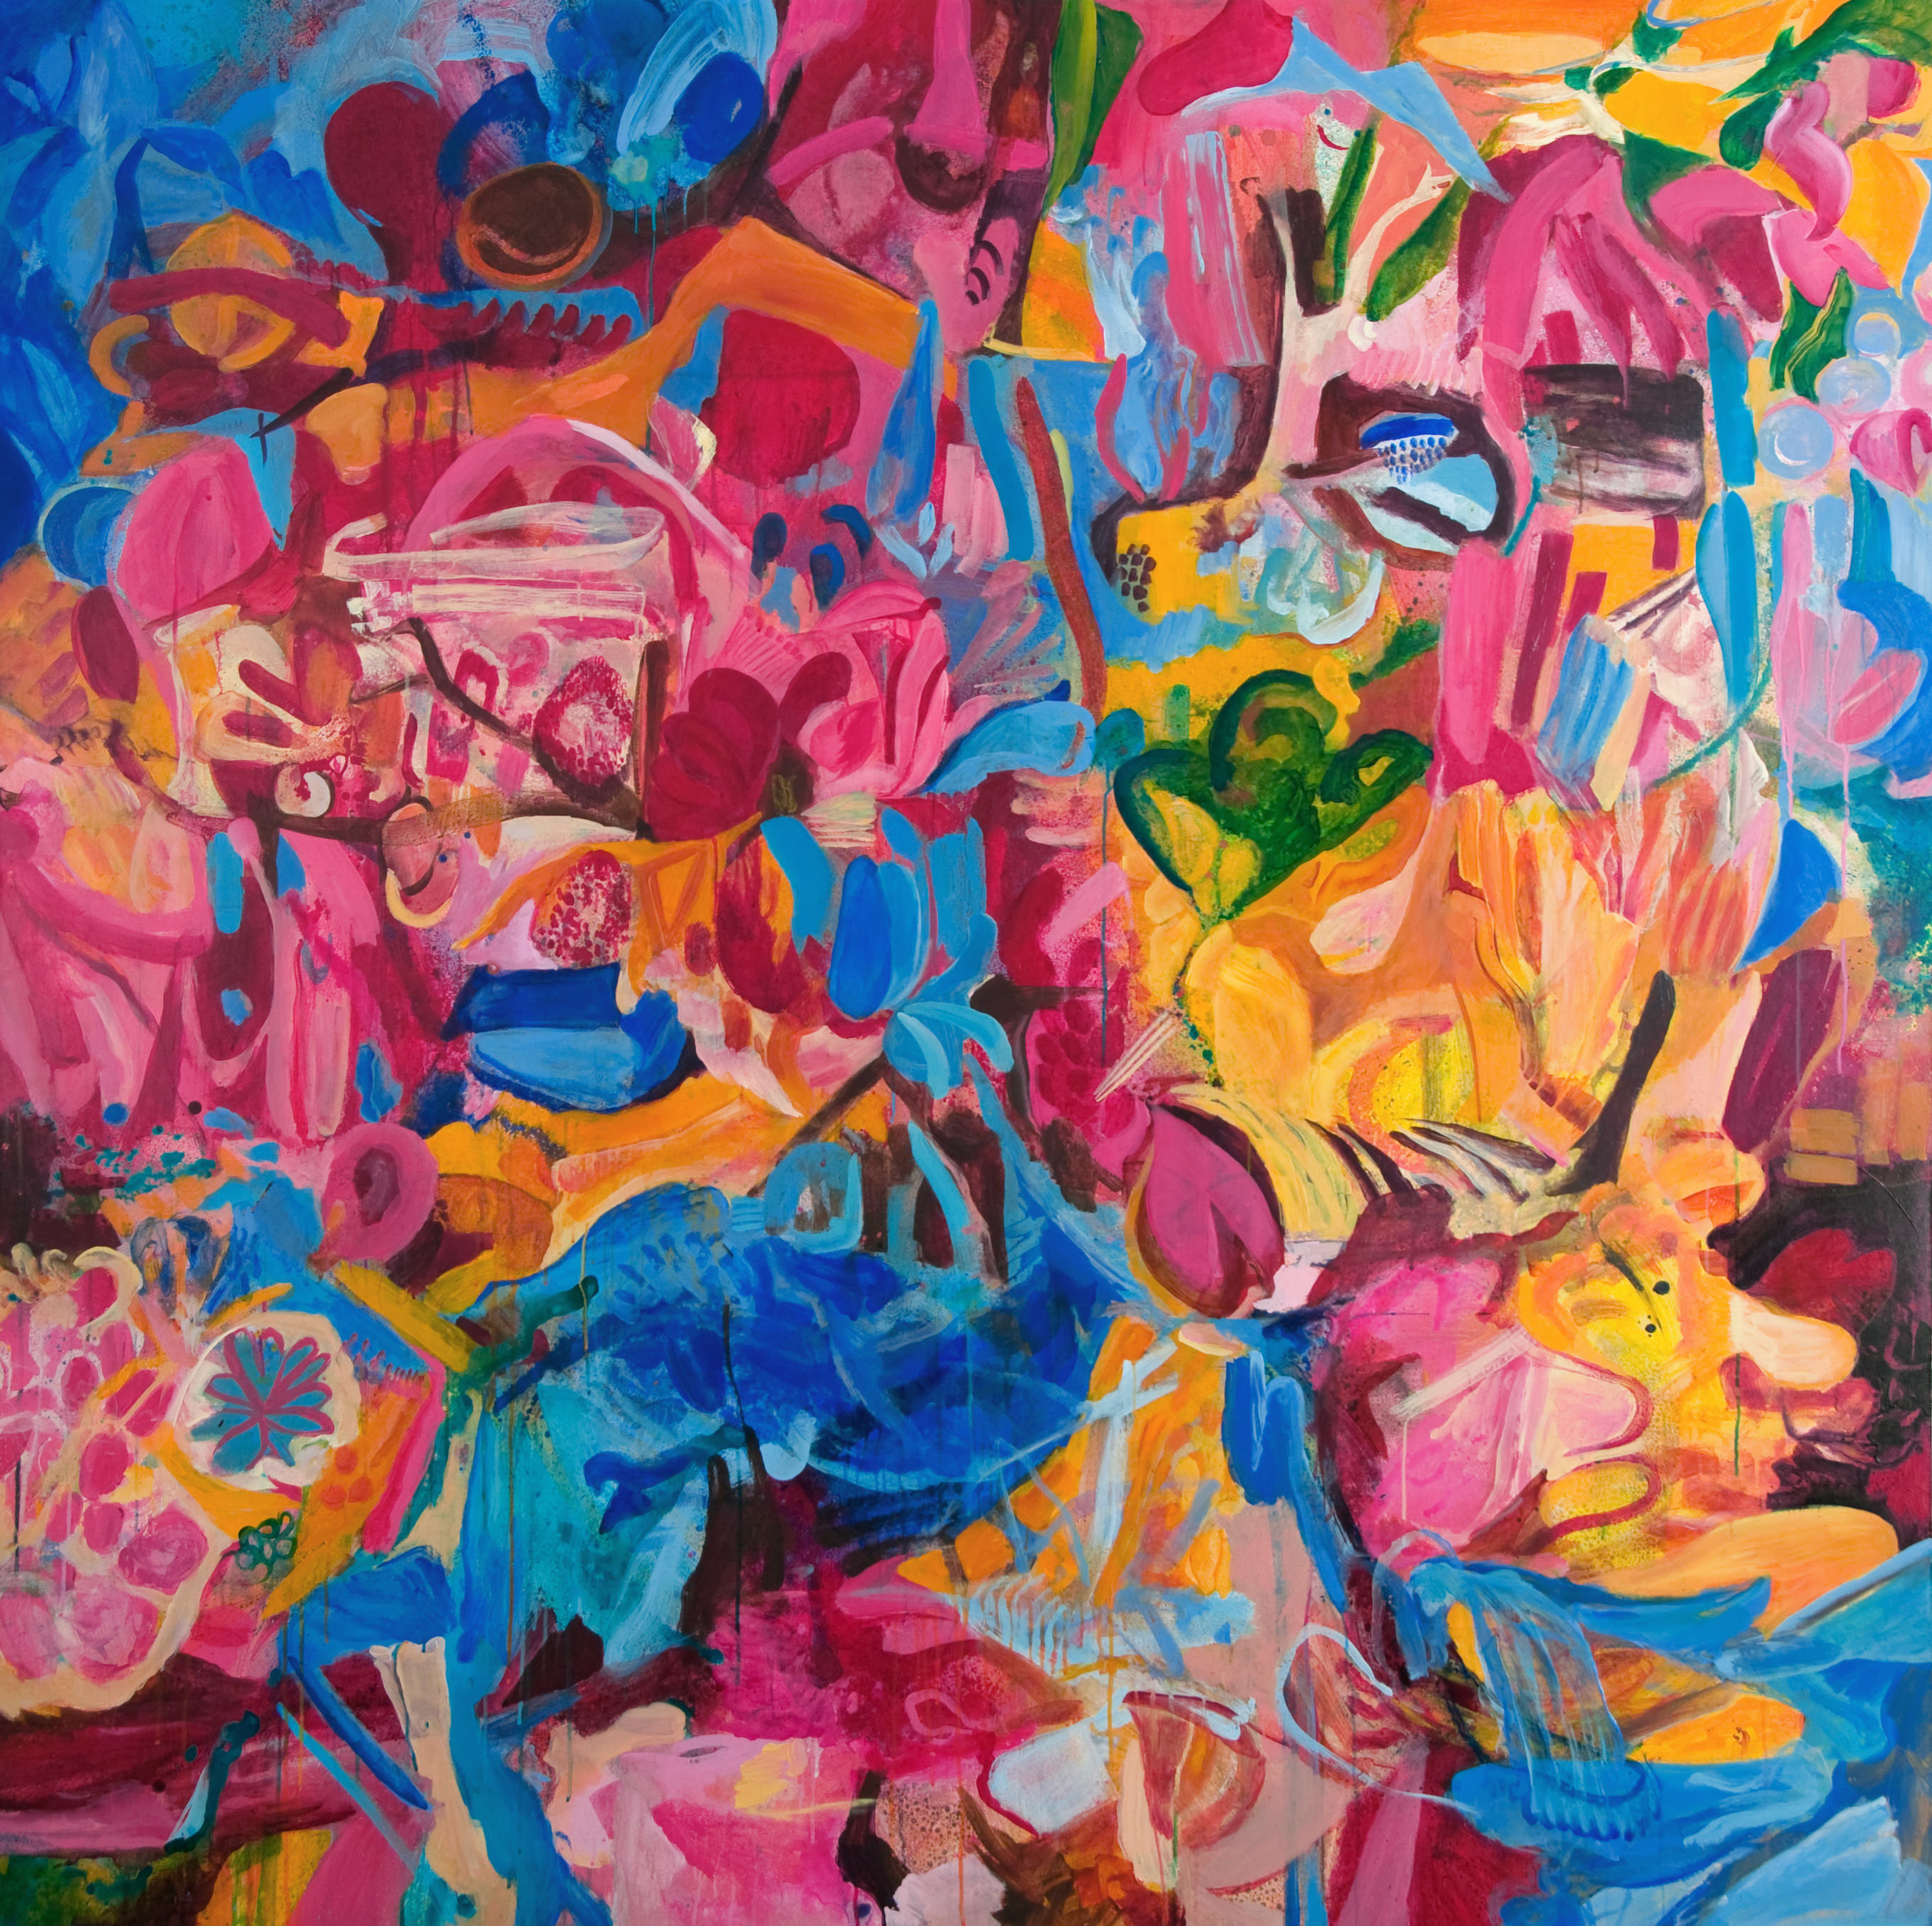 Elemental | 71 x 71 inches | paint on canvas